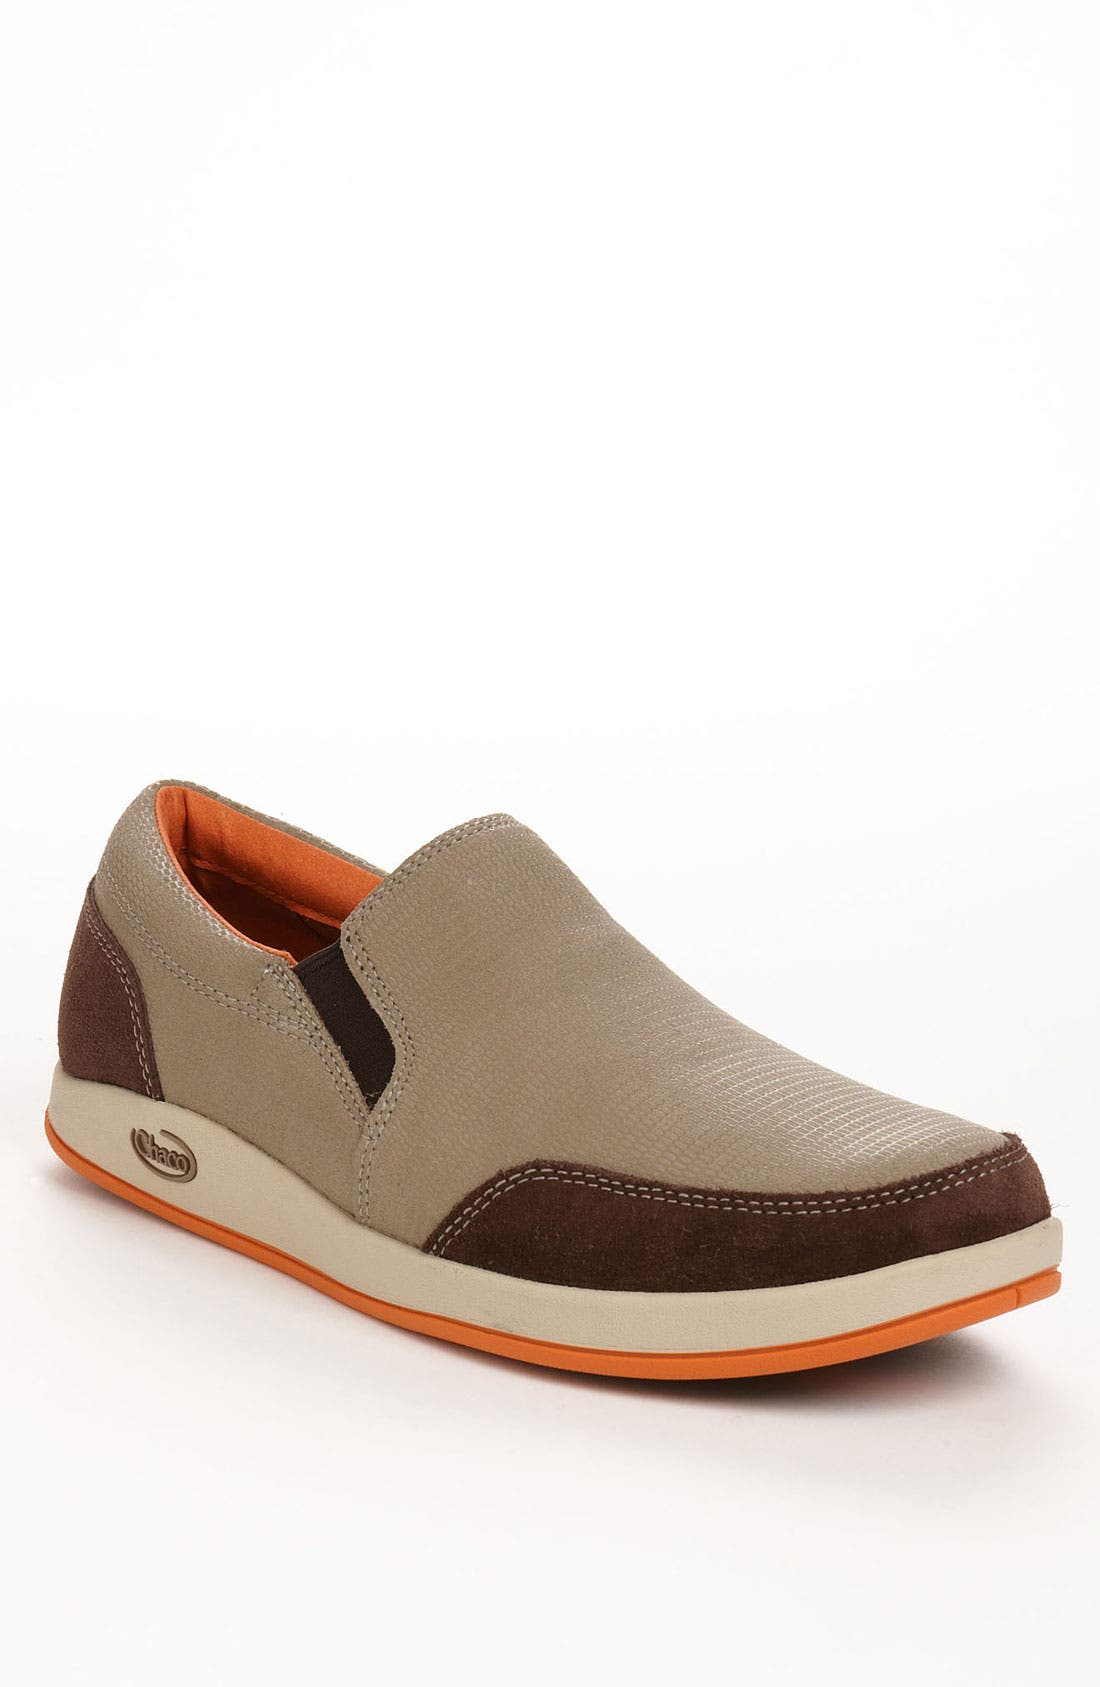 Alternate Image 1 Selected - Chaco 'Helm' Slip-On